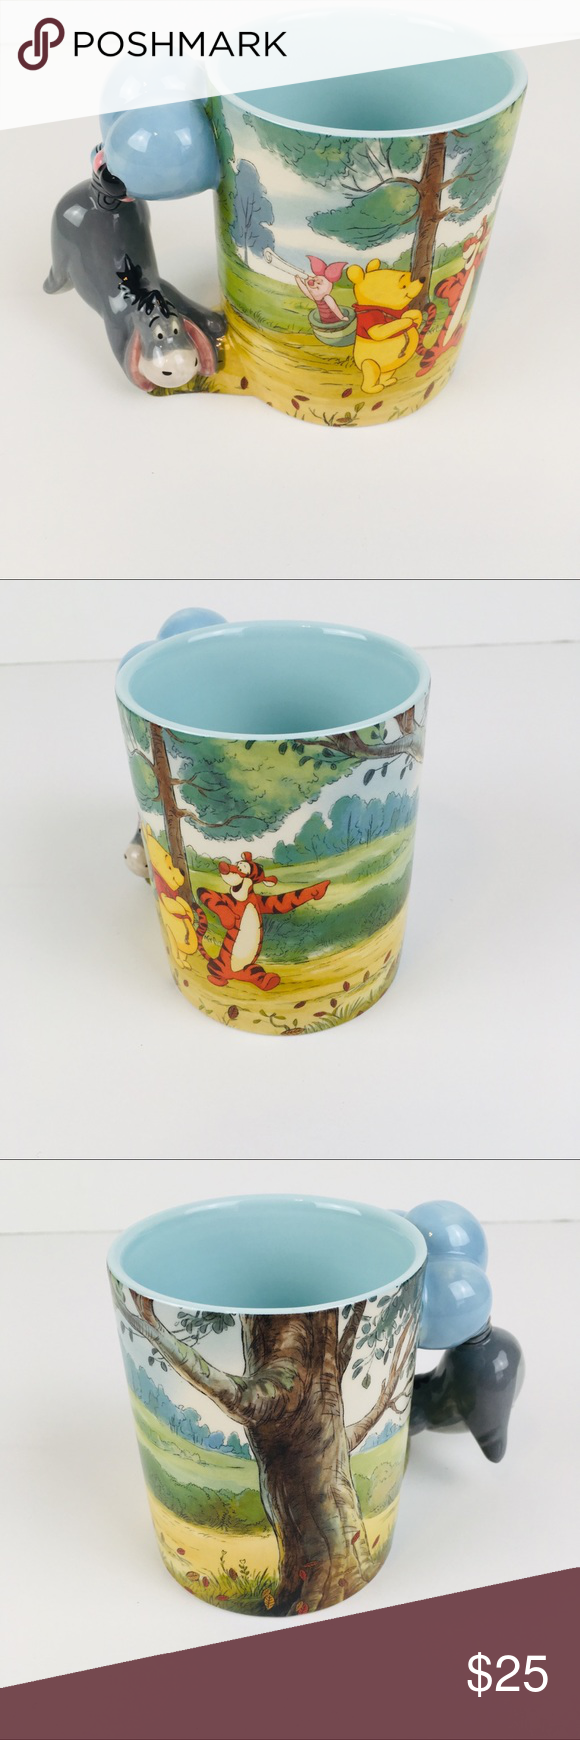 Disney Parks Winnie The Pooh Eeyore Handled Mug This is a coffee cup with a large Eeyore sculptured handle Also features Pooh, Tigger, and piglet Additional screen art elements Blue interior Holds 12 ounces Ceramic Excellent condition no chips or damage Bundle and save, offers welcome Disney Kitchen Coffee & Tea Accessories #disneykitchen